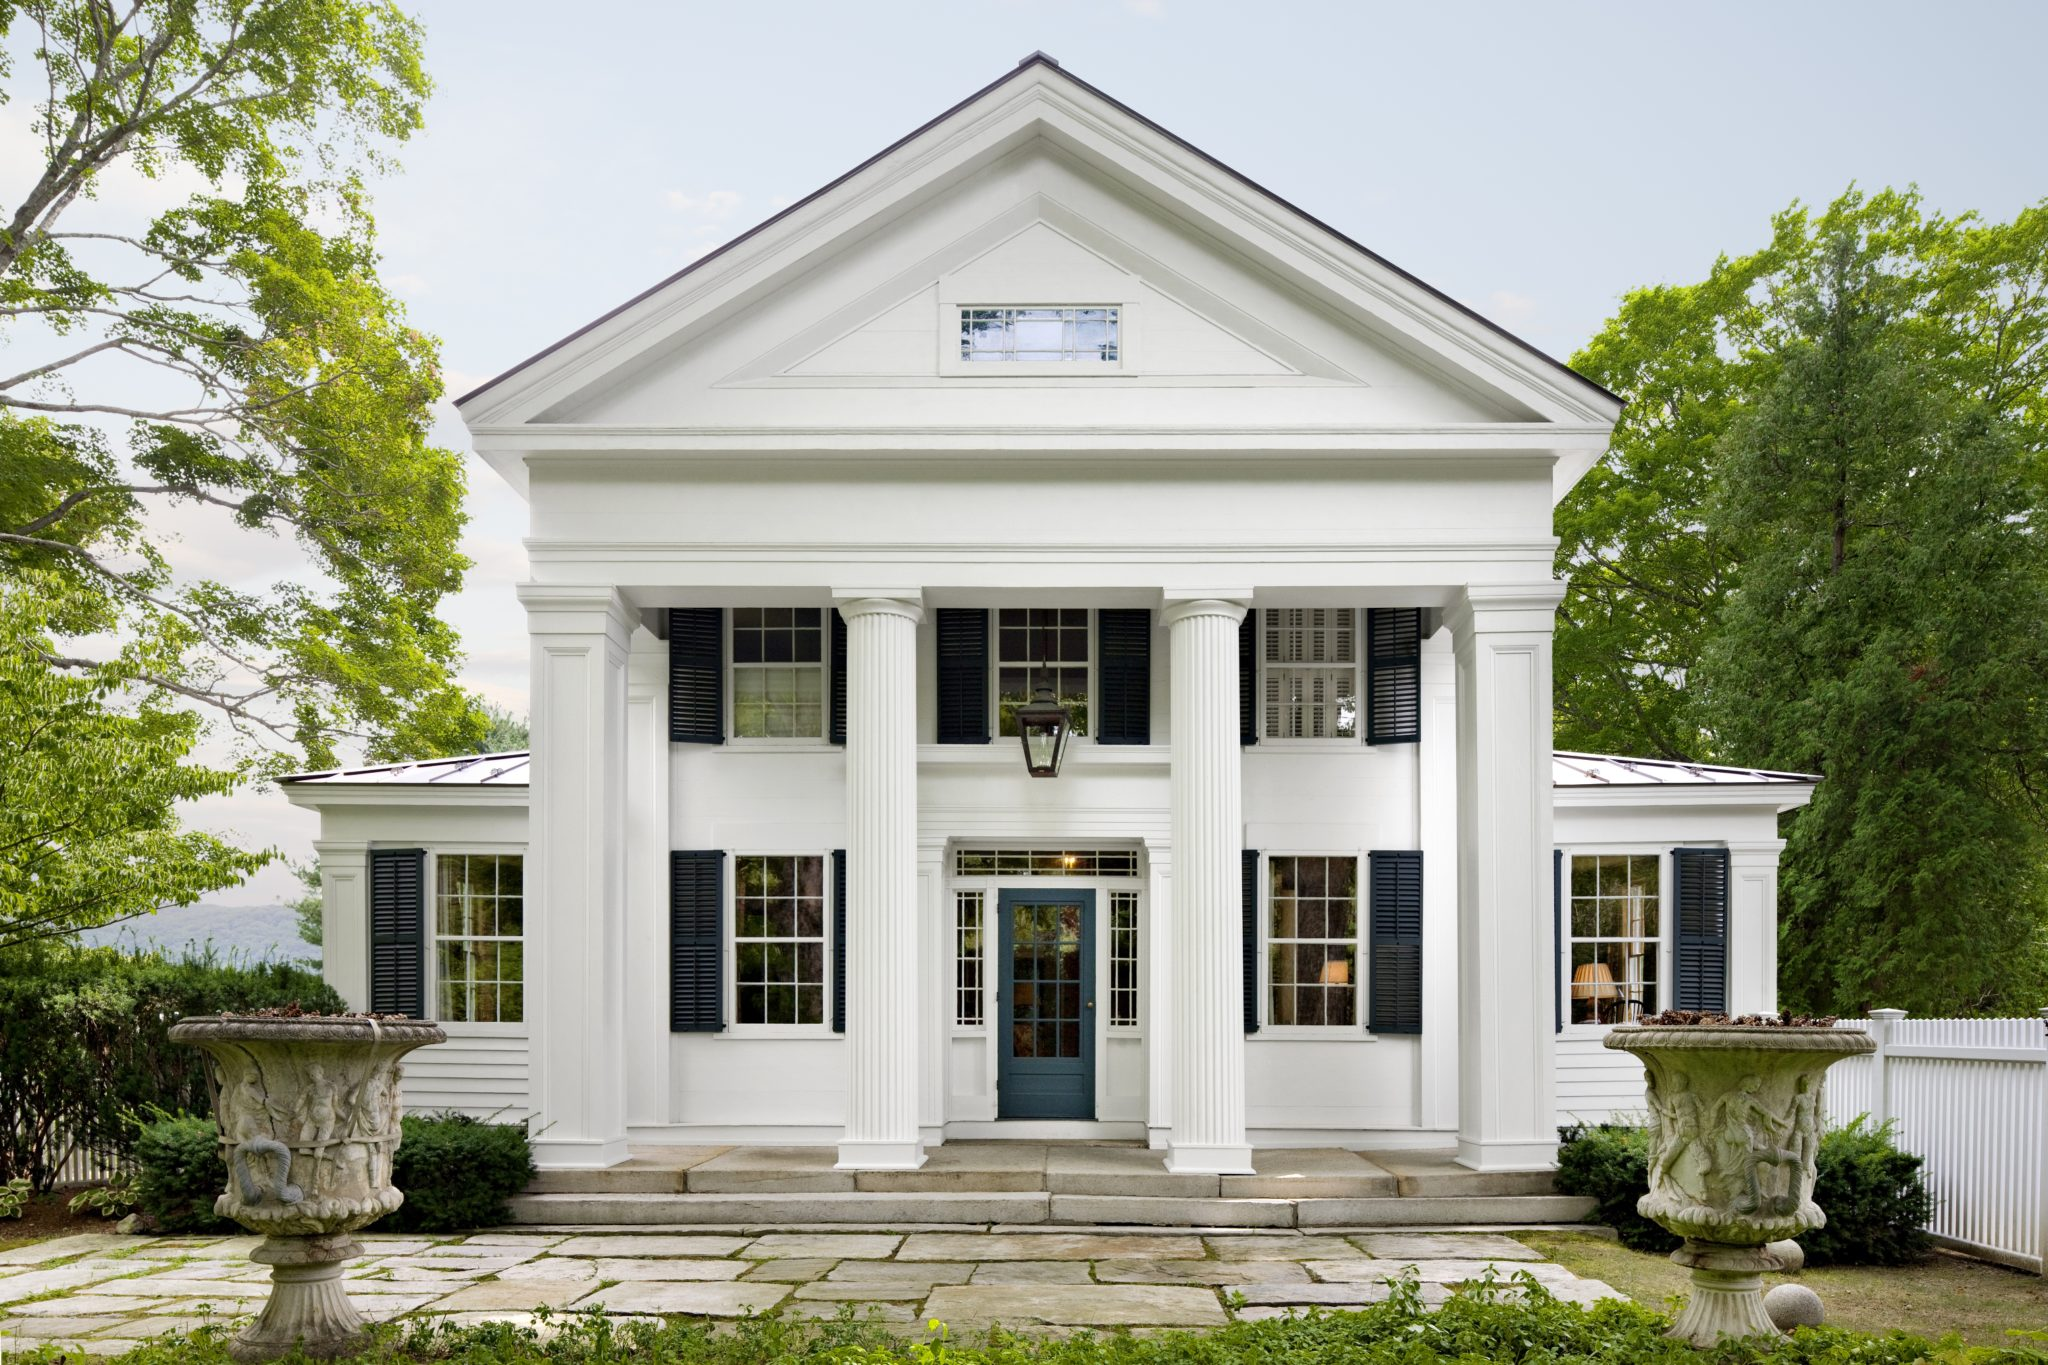 Entry Portico of Restored Greek Revival House by Haver & Skolnick Architects